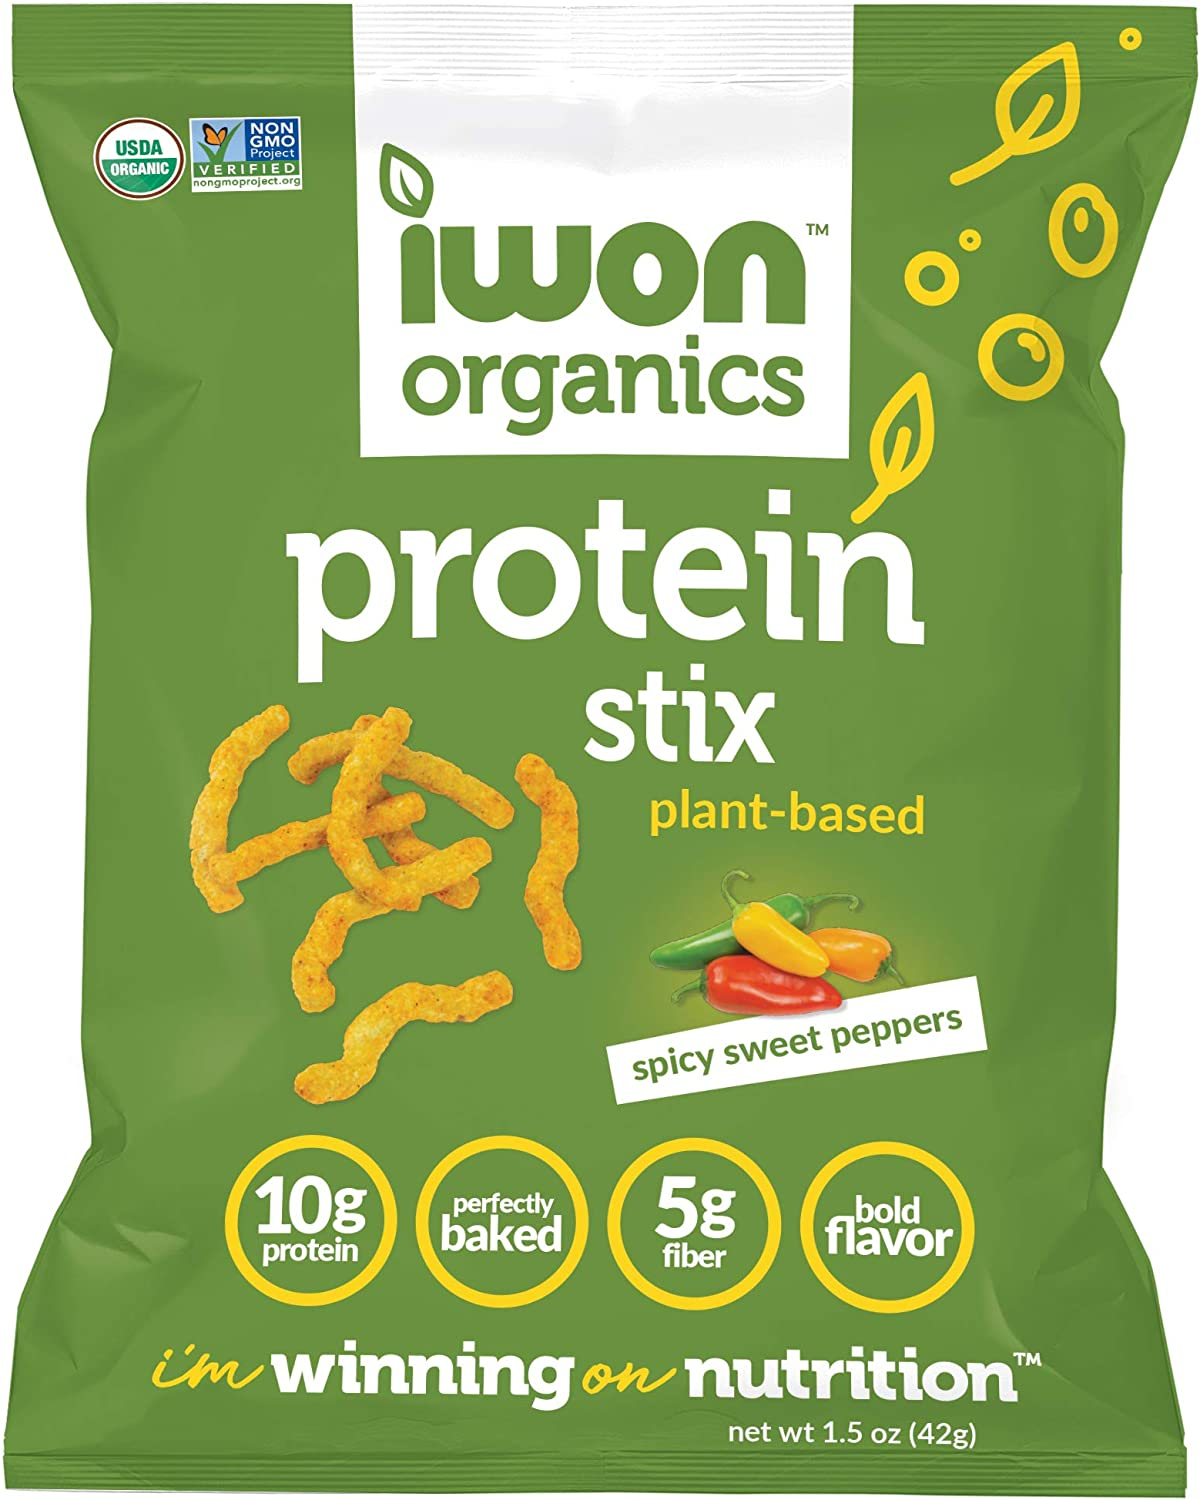 IWON Organics Spicy Sweet Pepper Flavor Snack Stix, High Protein and Organic Healthy Snacks, 8 Bags, 1.5 Ounce